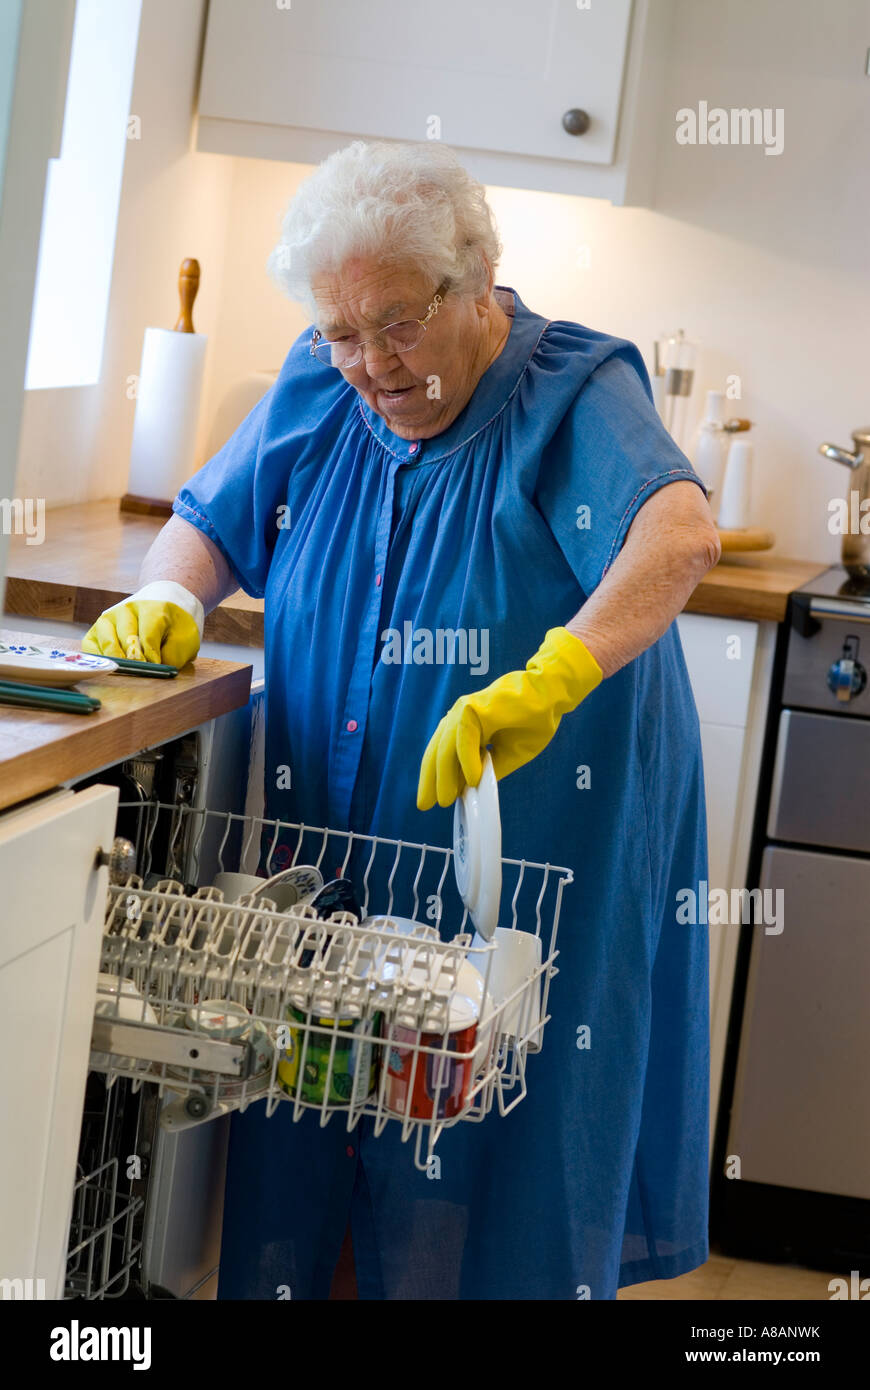 Independent elderly lady loading her dishwasher in her modern home kitchen - Stock Image